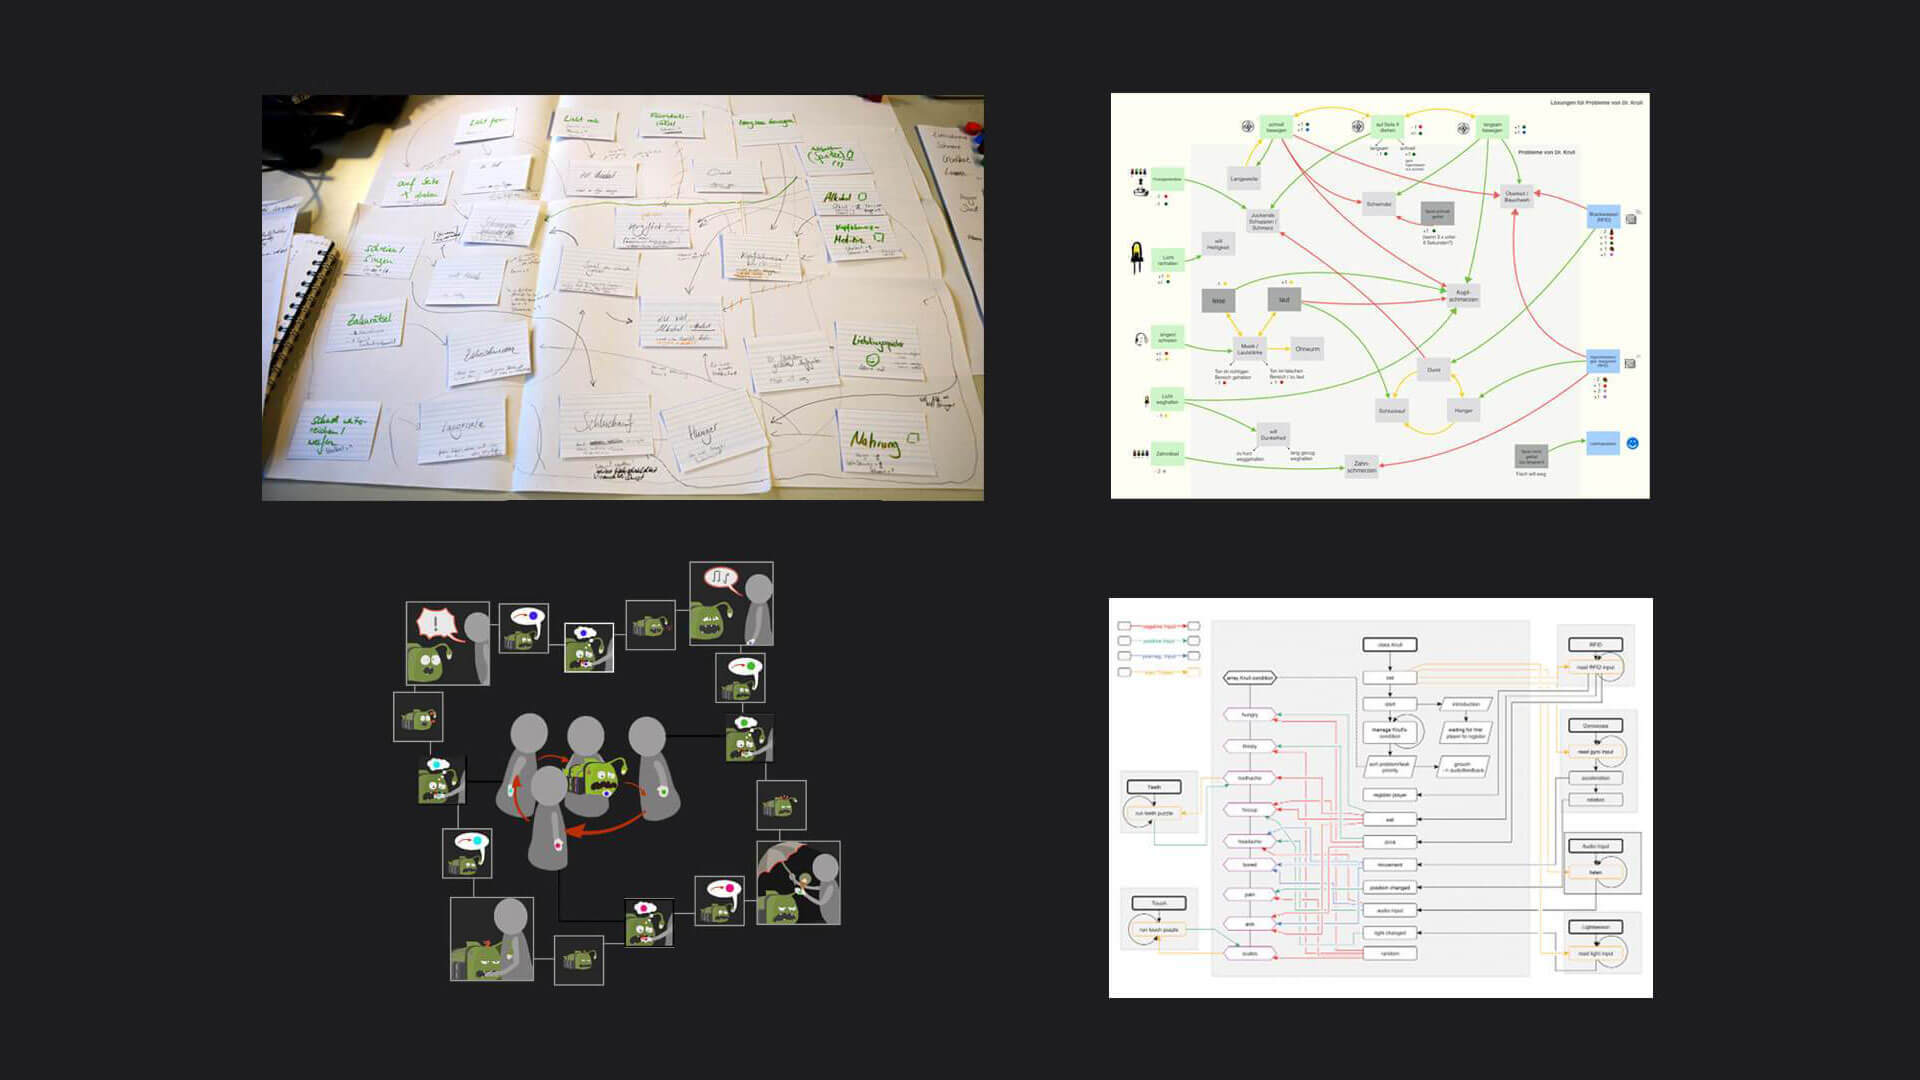 Game system development: pen&paper prototyping and flow charts of the game system / development